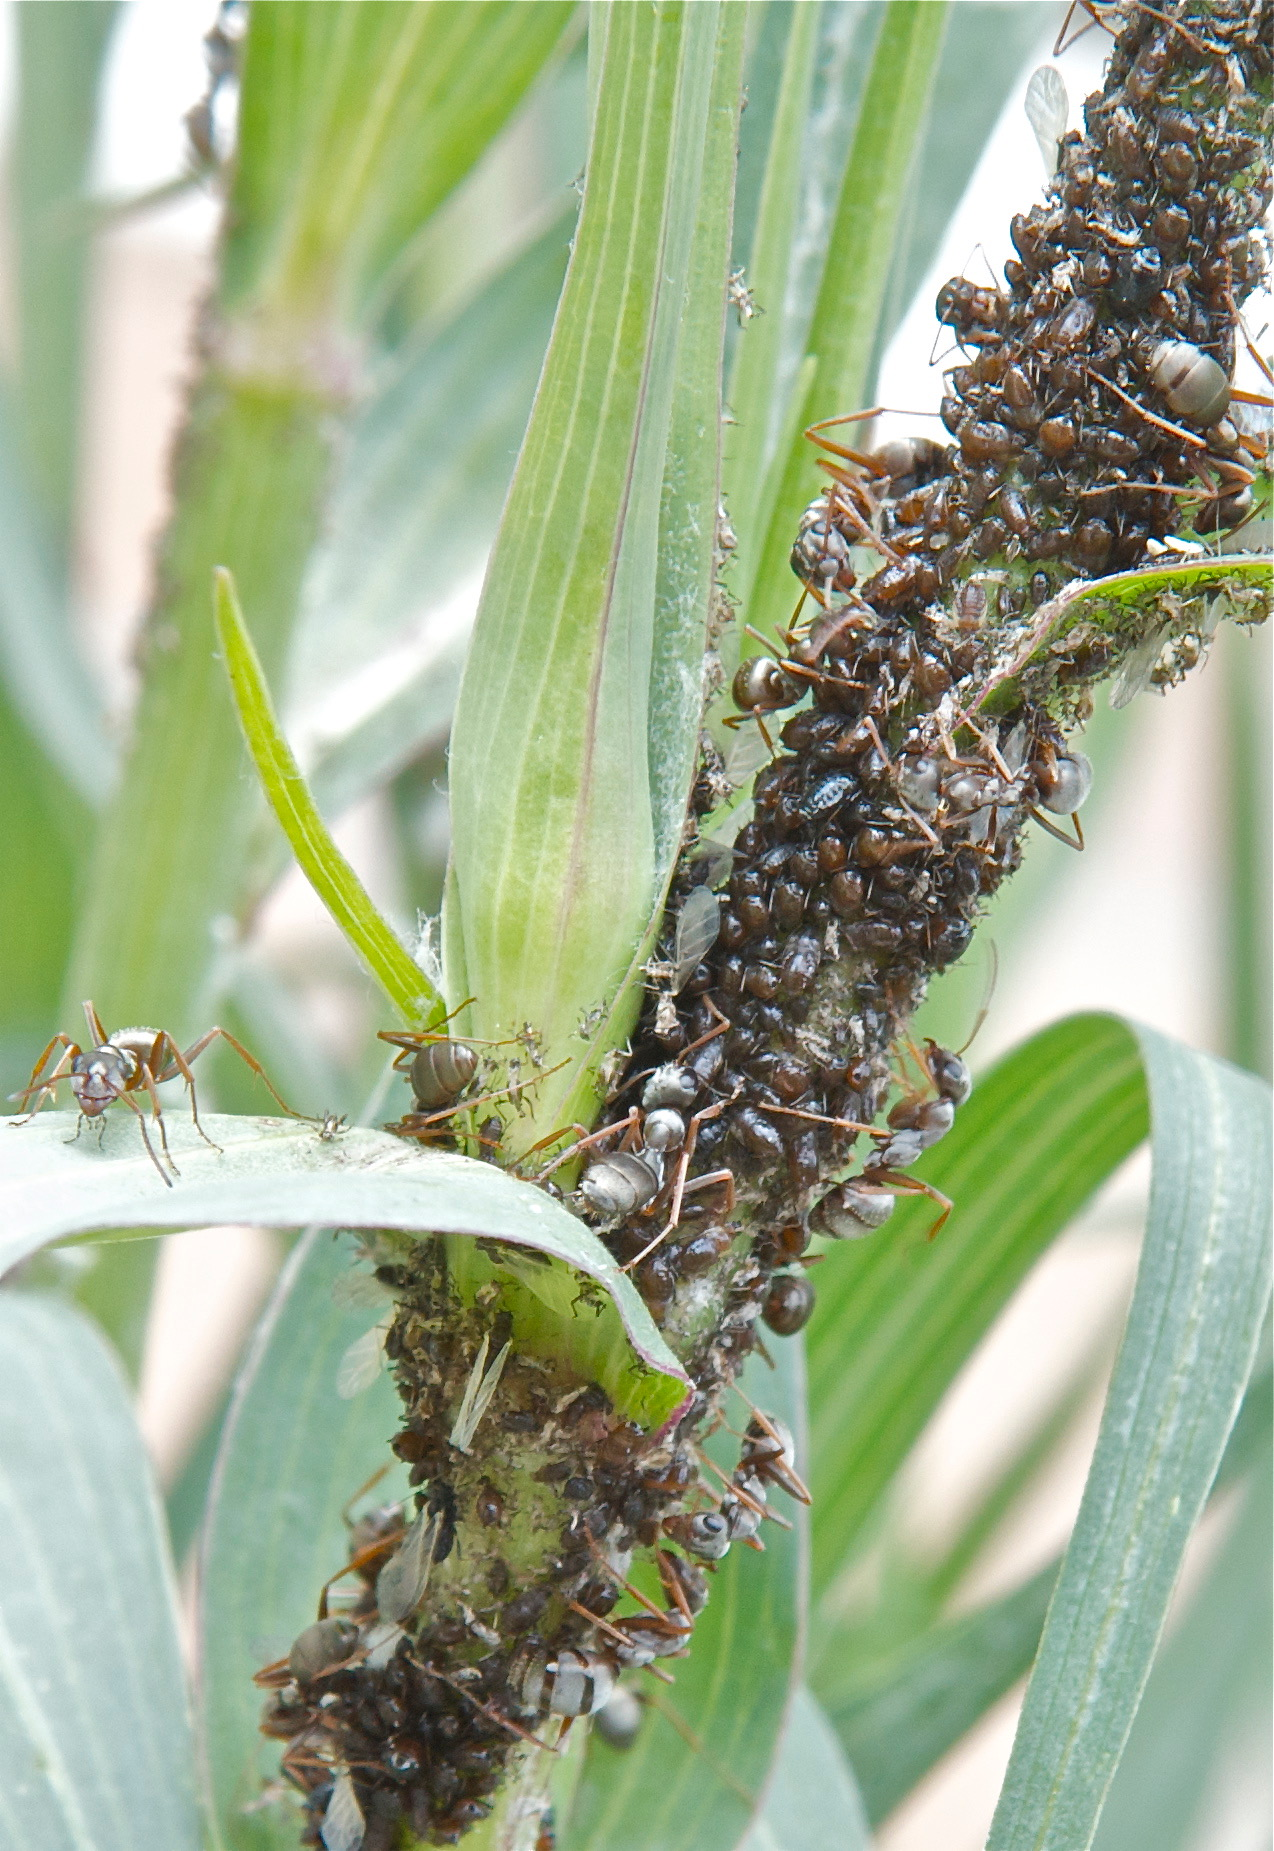 Ants and Aphids on Salsify